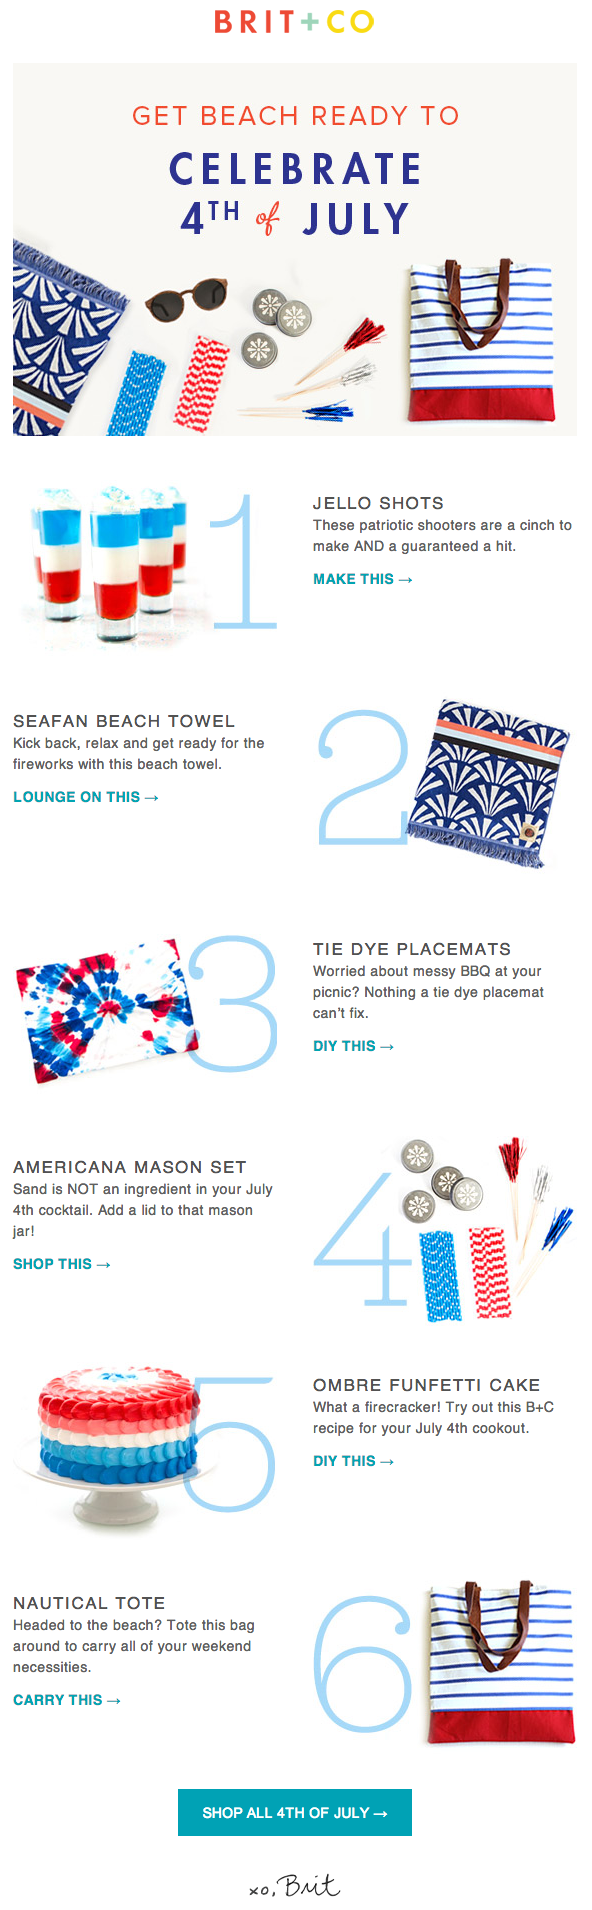 Retail Marketing Calendar 2019: Brit + Co Fourth of July email